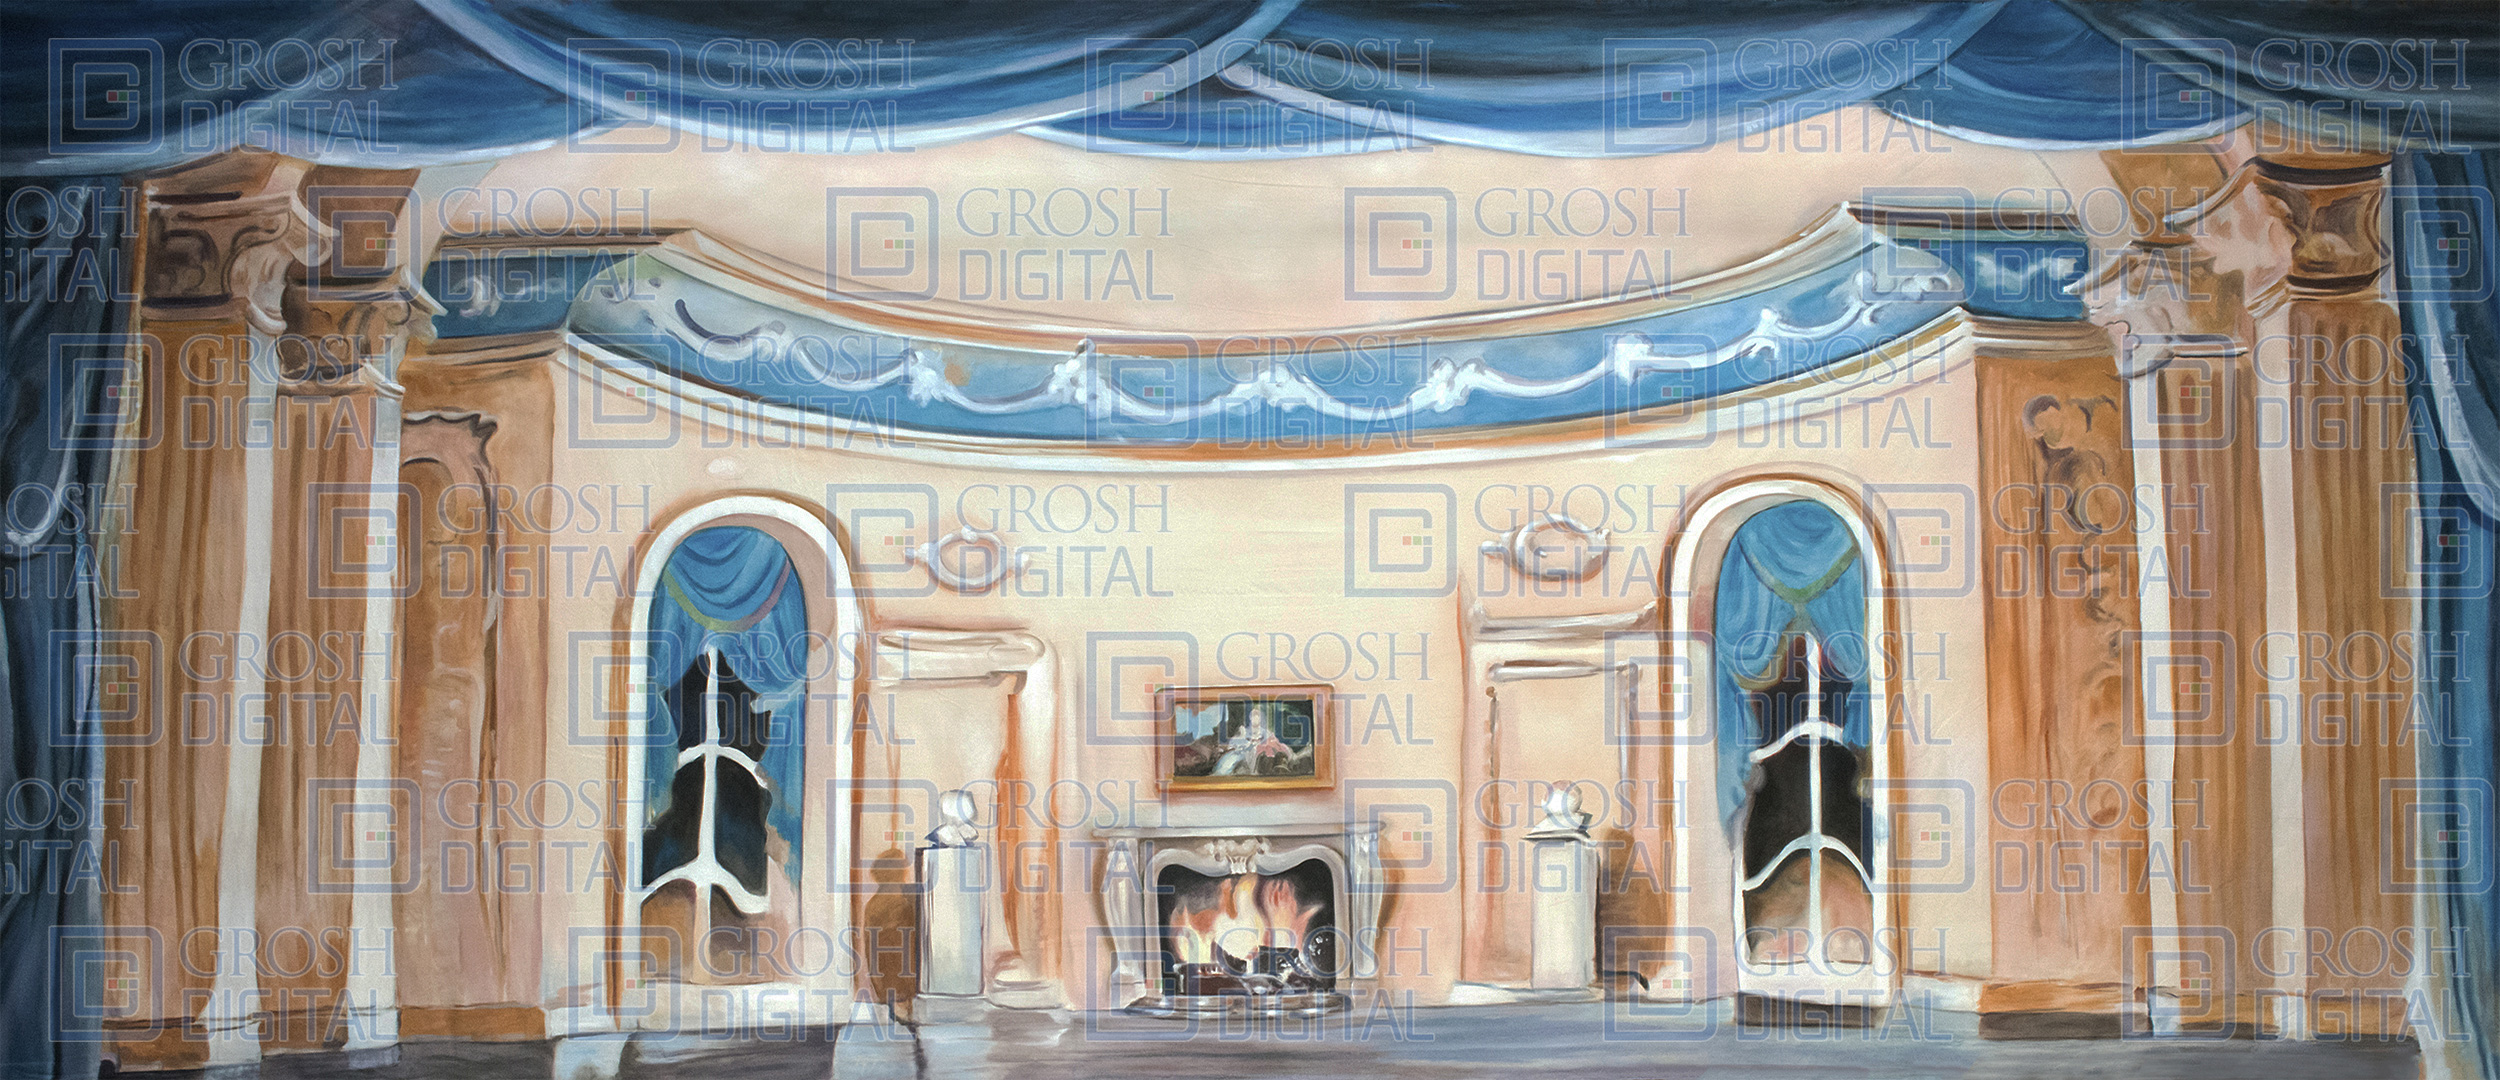 Parlor Interior Projected Backdrop for Annie, Beauty and the Beast, Cinderella, Coppelia, Dance, Frozen, Interiors, Little Mermaid, My Fair Lady, Nutcracker, Palace/Parlors, Sleeping Beauty